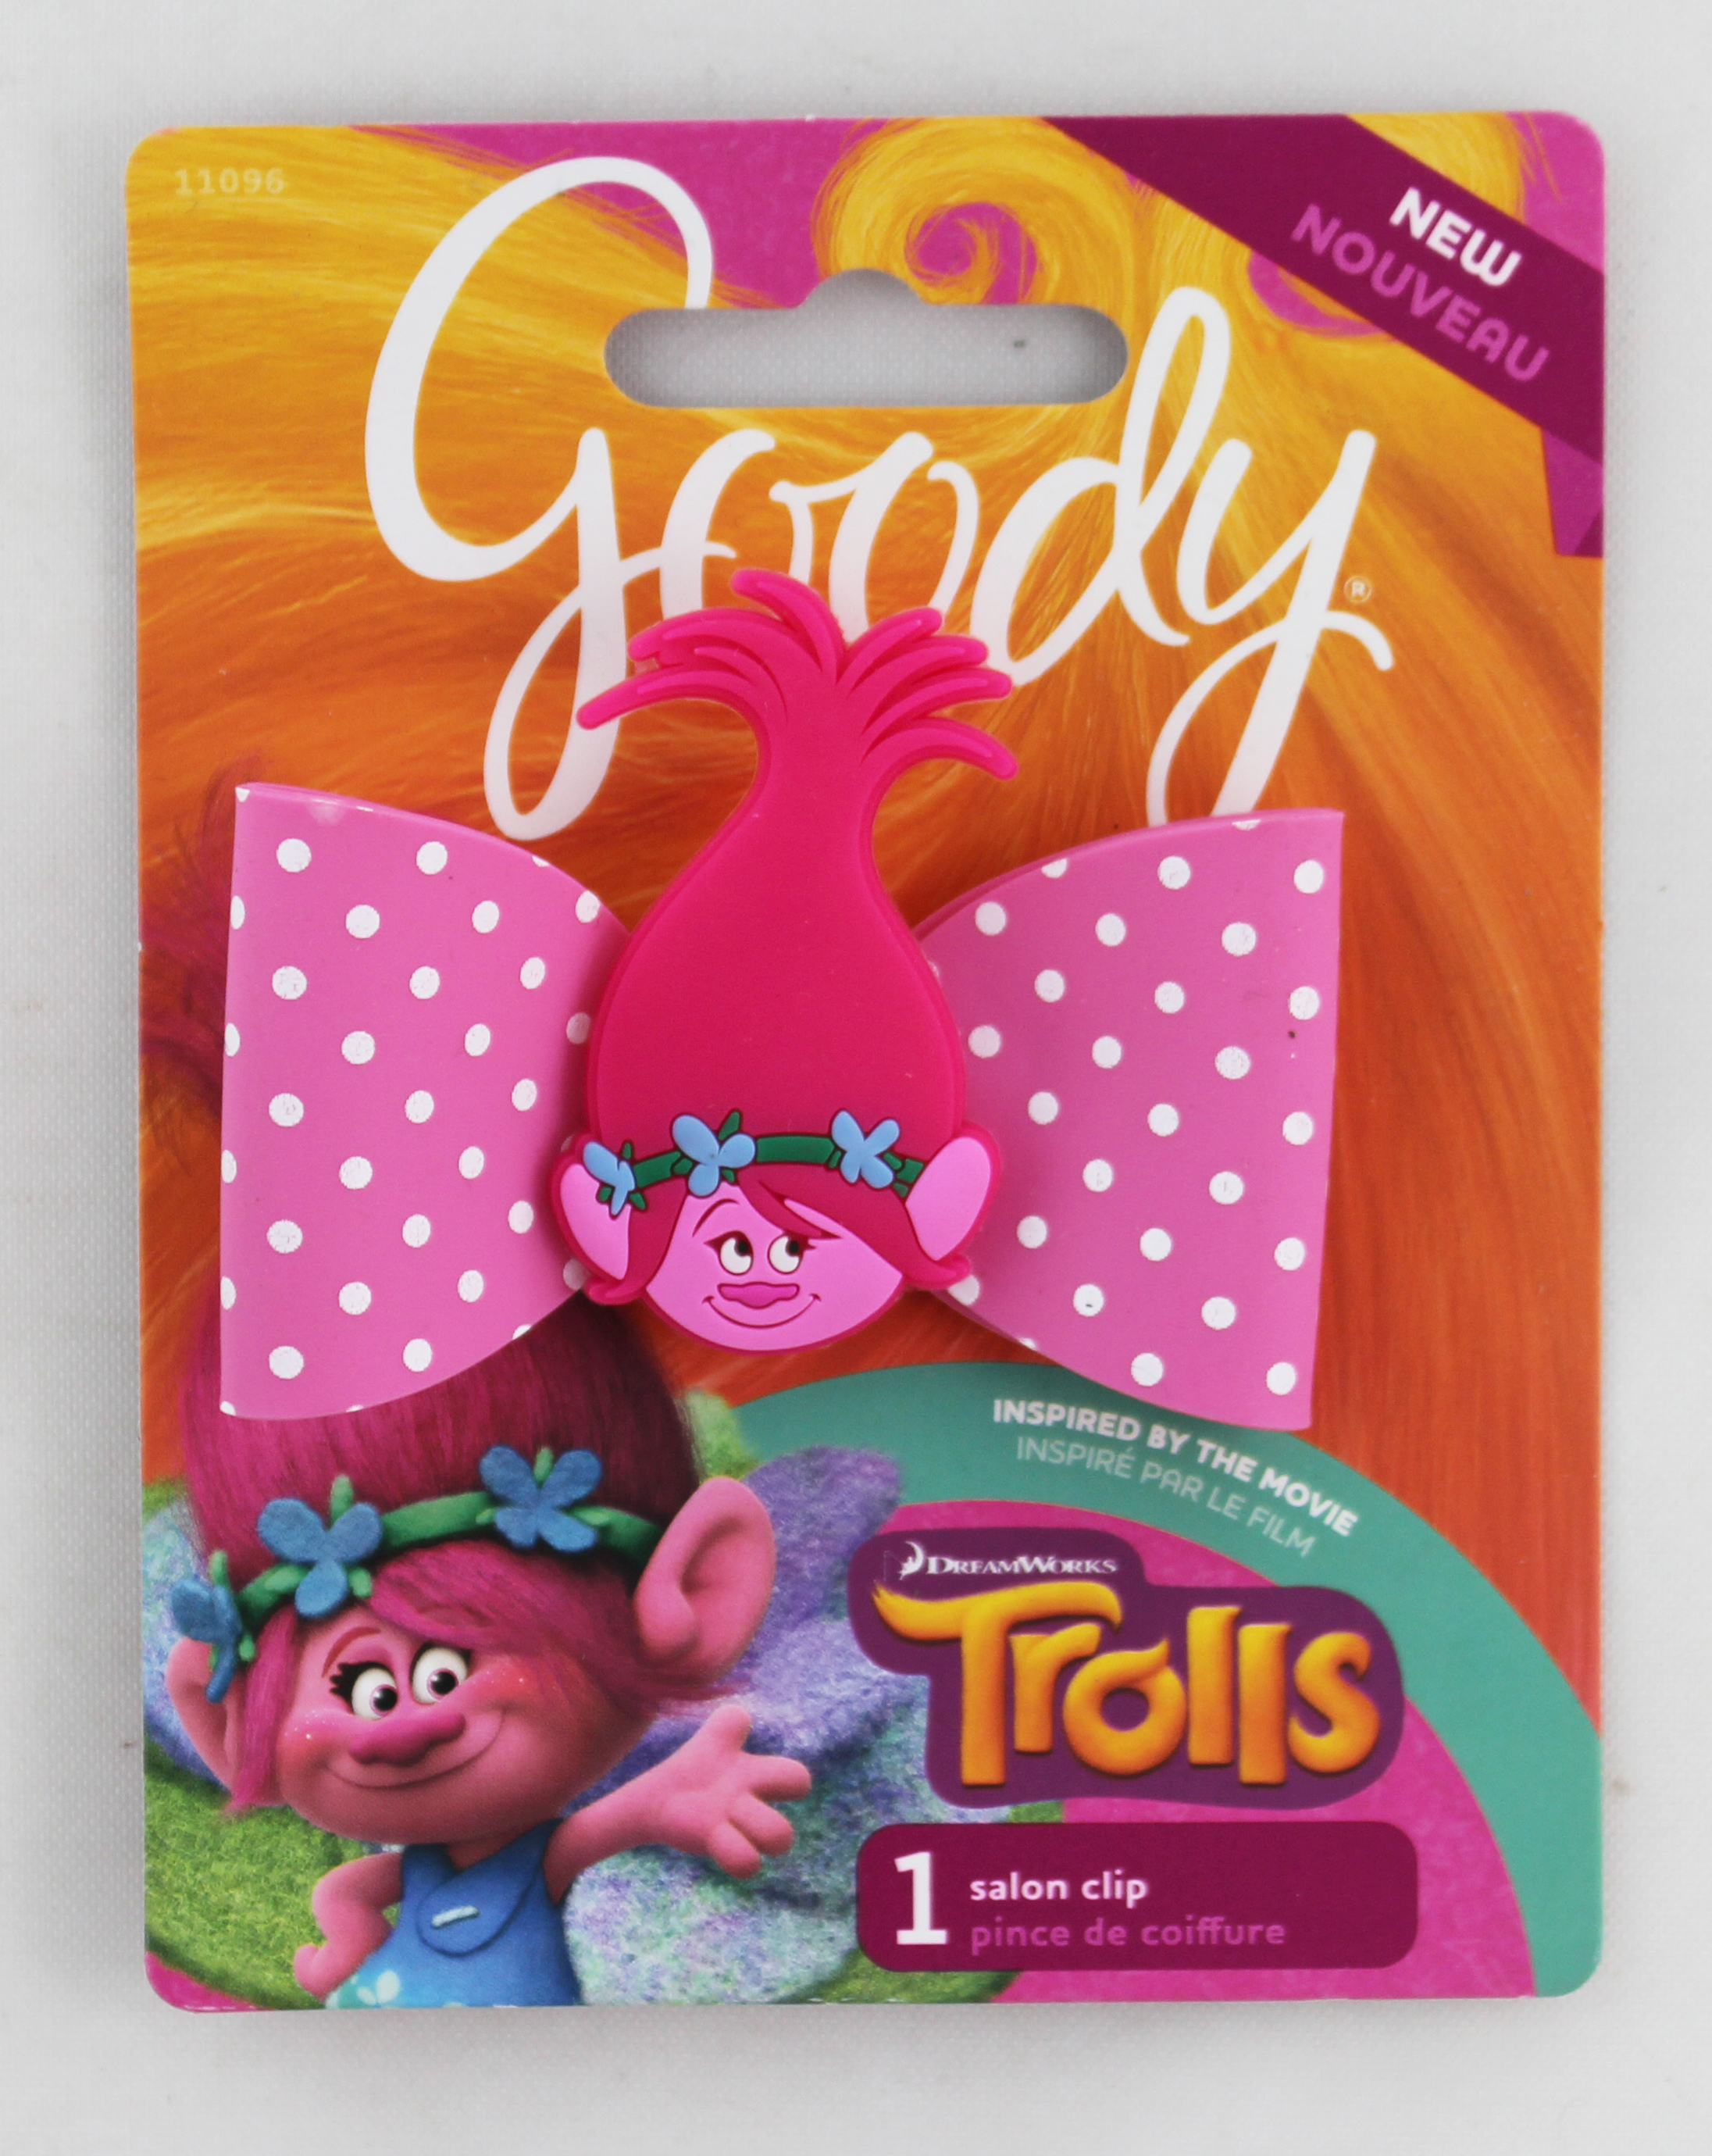 Goody Trolls Value Bow Salon Clip, 1 Count